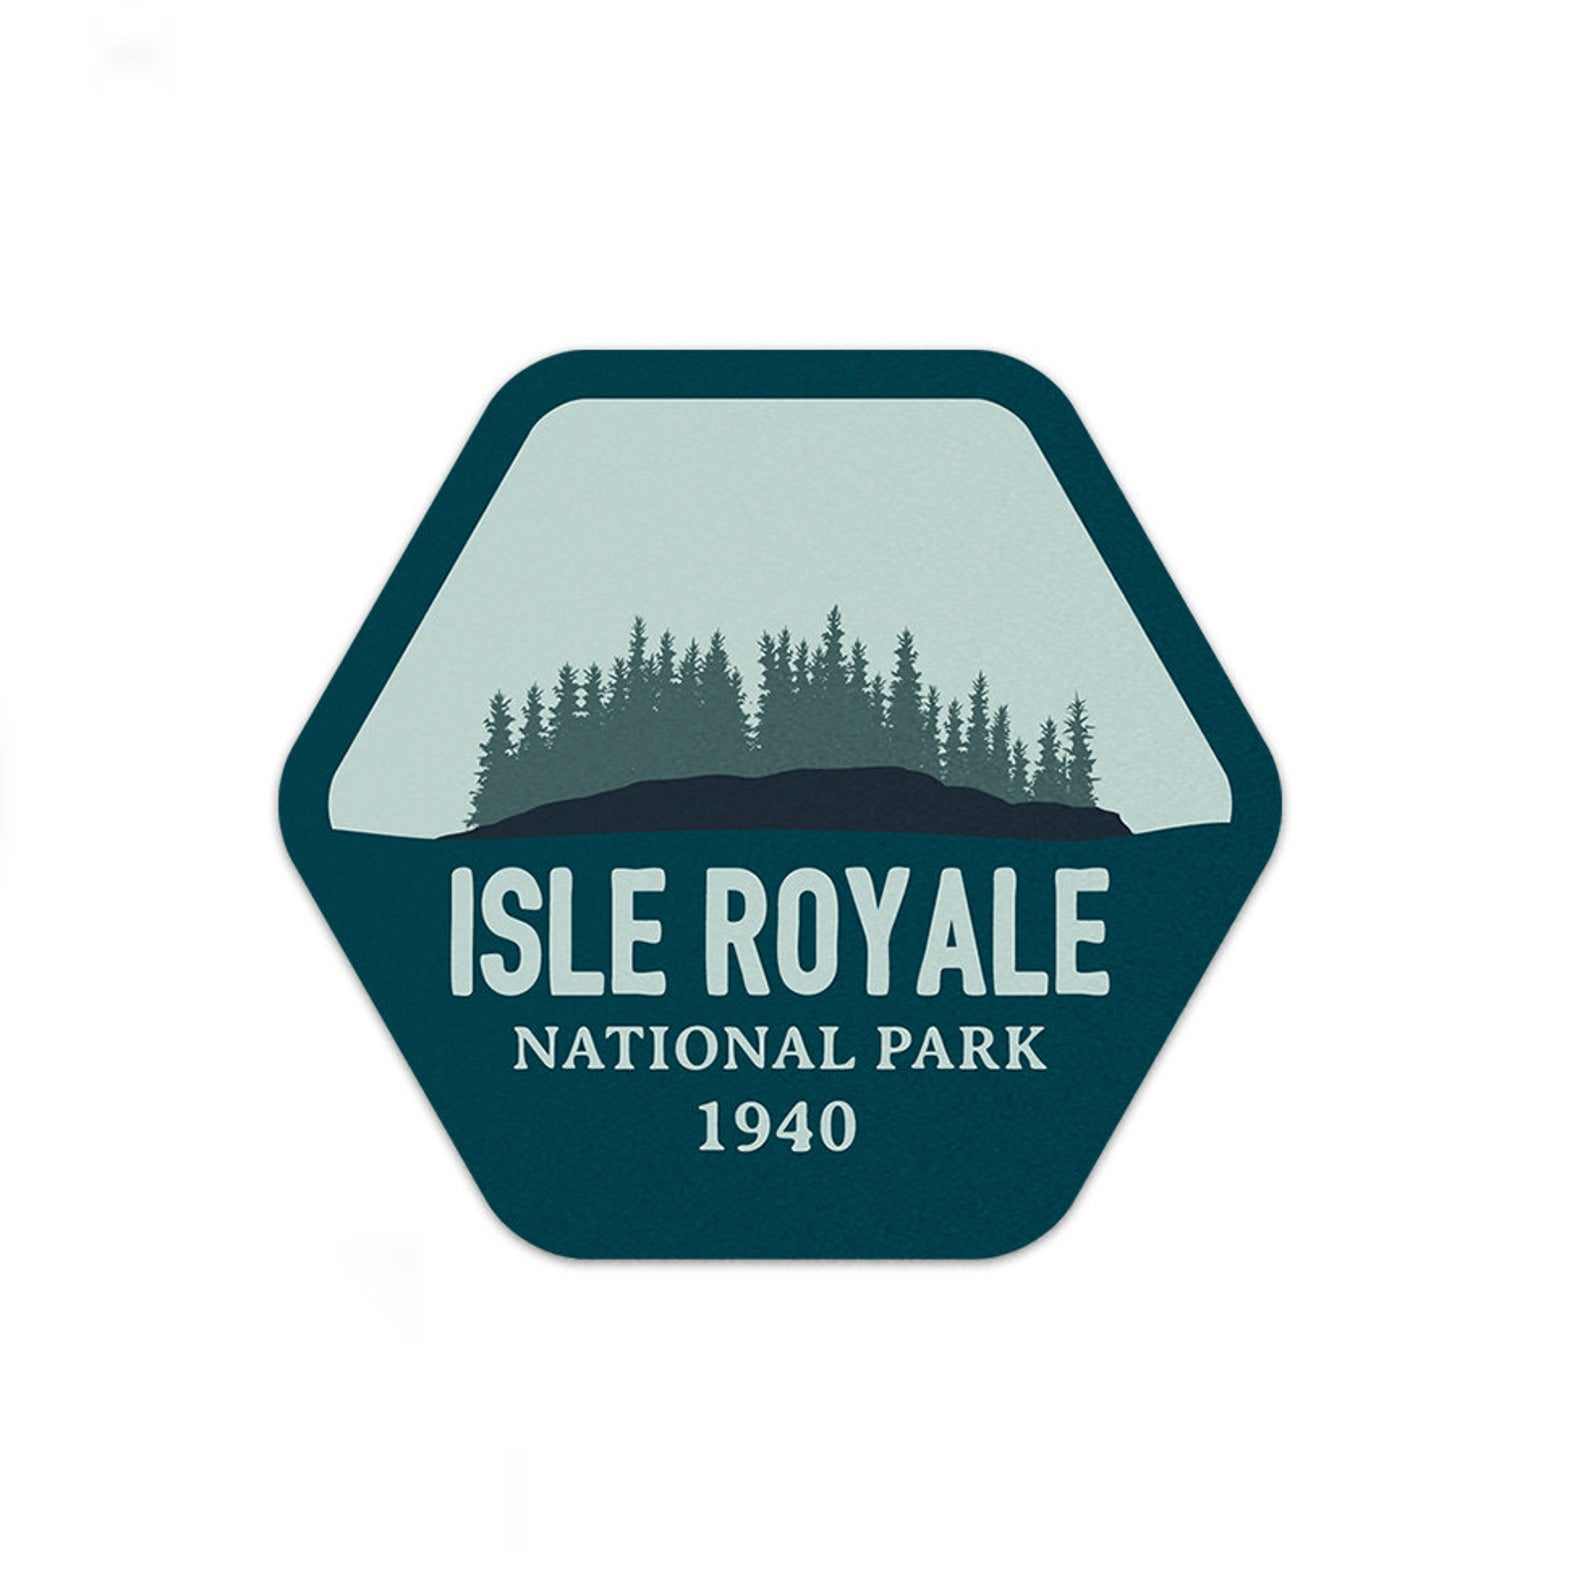 isle royale national park sticker